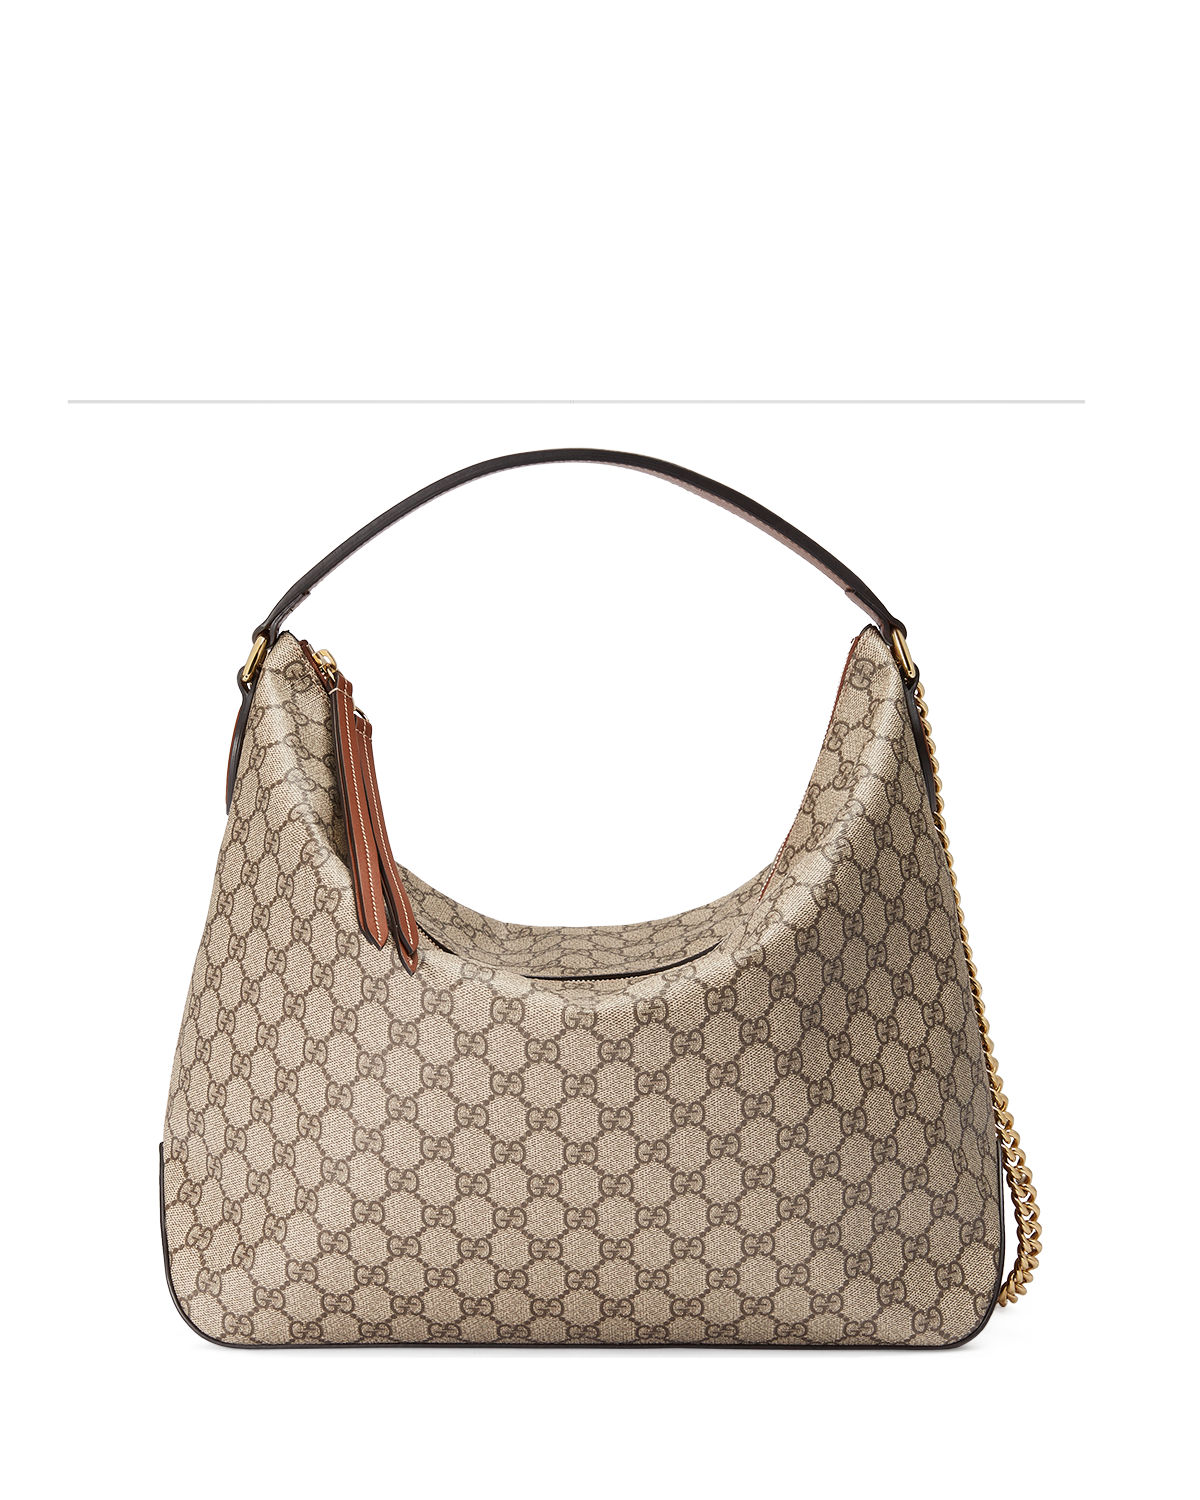 8e3b4712b21 Gucci Linea A Large GG Supreme Canvas Hobo Bag